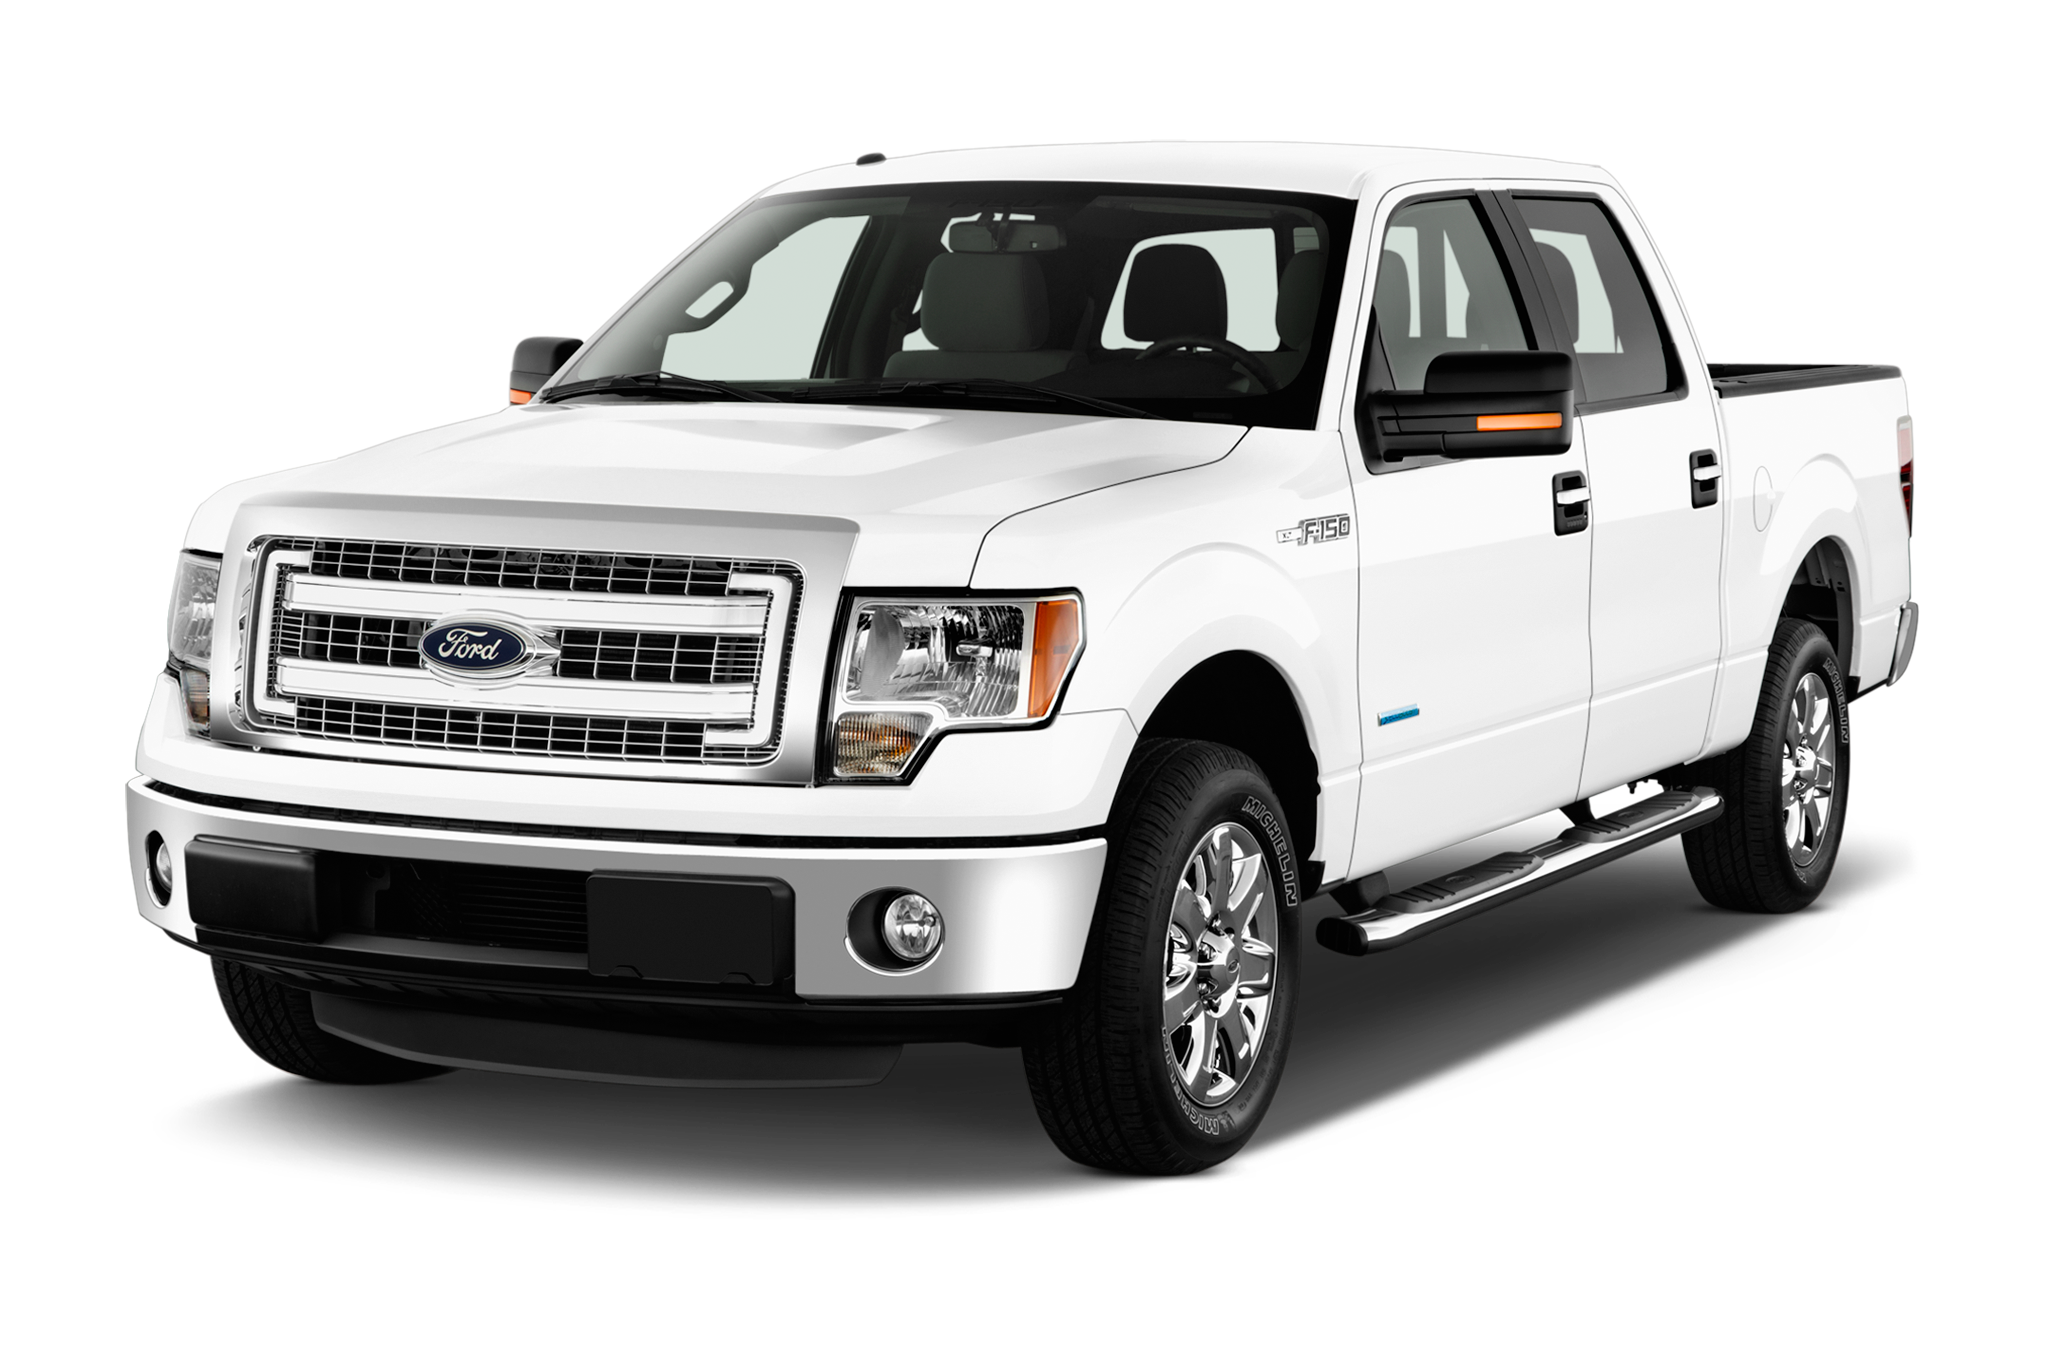 2013 ford f 150 limited 4x4 supercrew 145 in specs and features msn autos. Black Bedroom Furniture Sets. Home Design Ideas